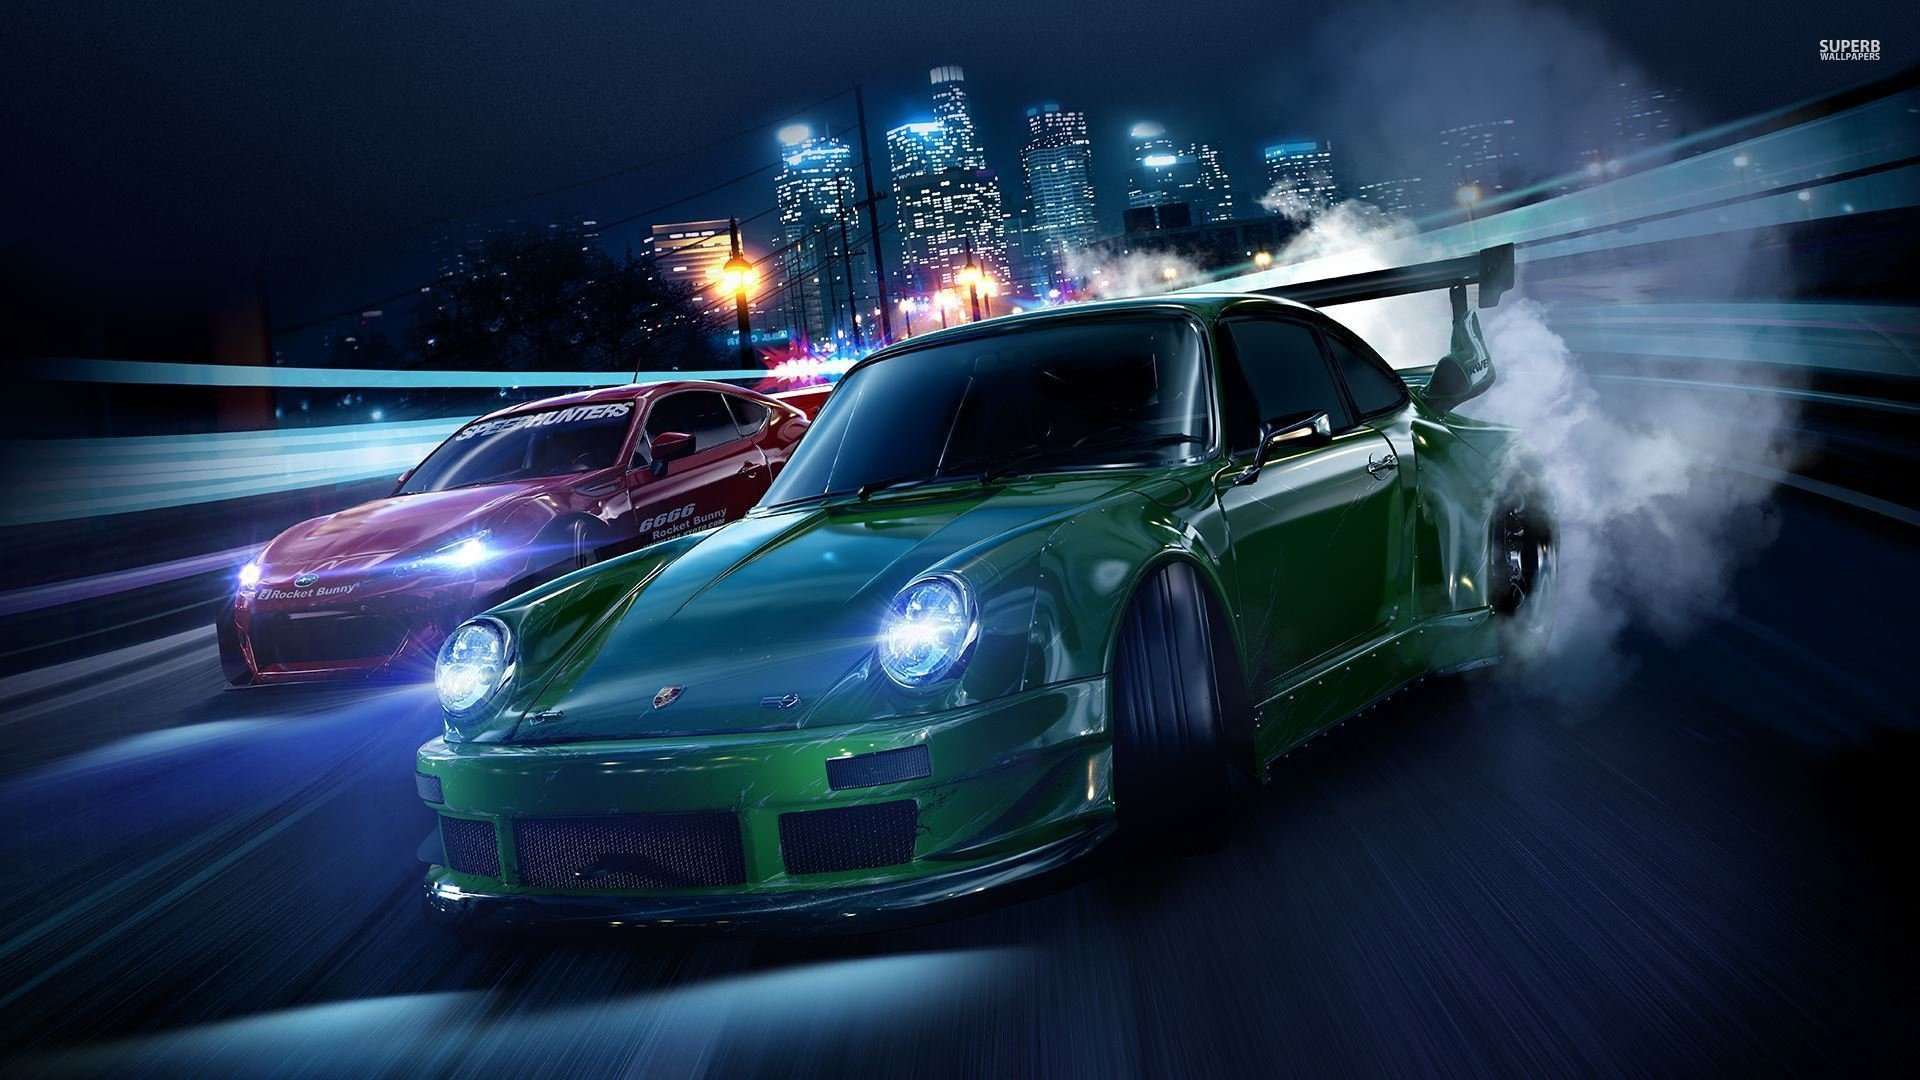 753 need for speed hd wallpapers | background images - wallpaper abyss